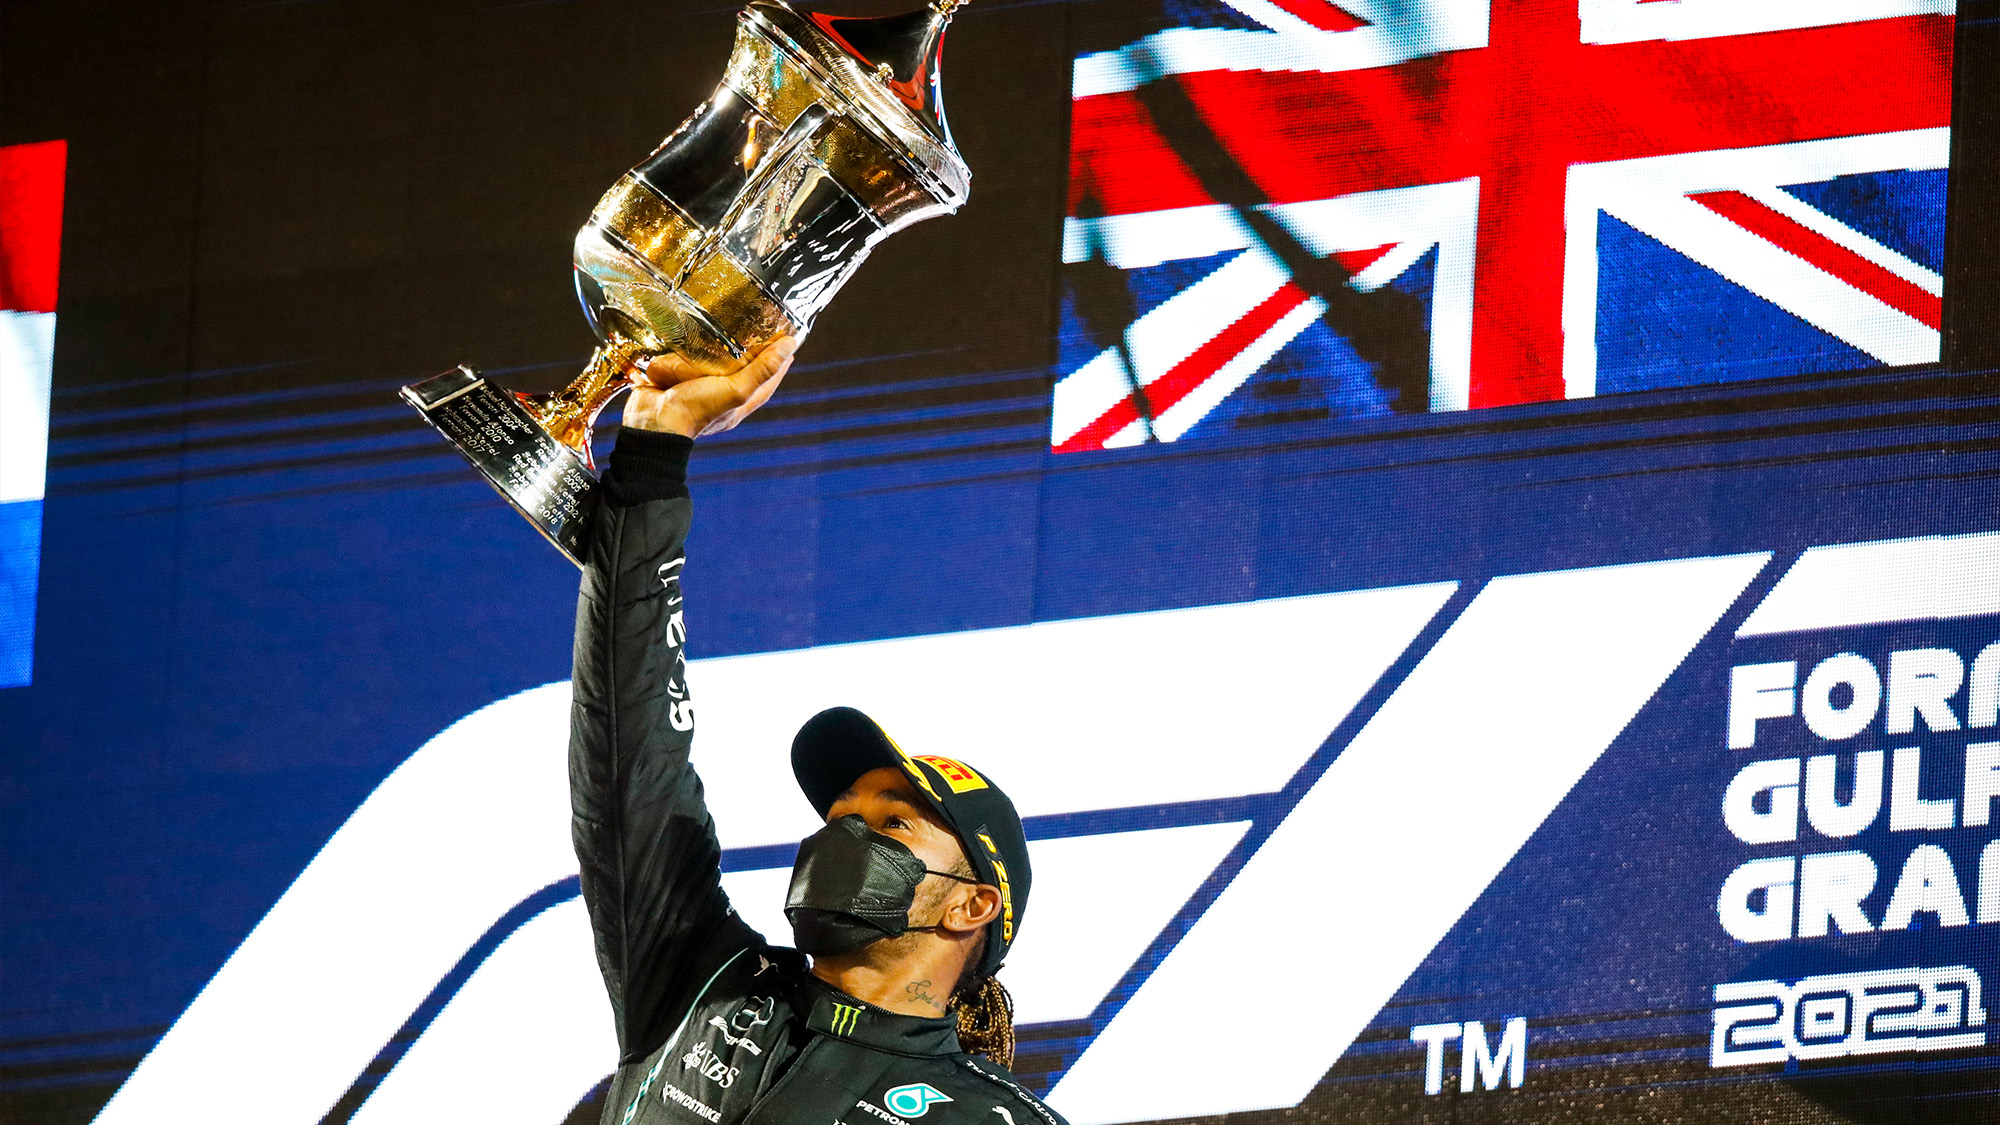 Lewis Hamilton lifts the winners trophy from the 2021 Bahrain Grand Prix